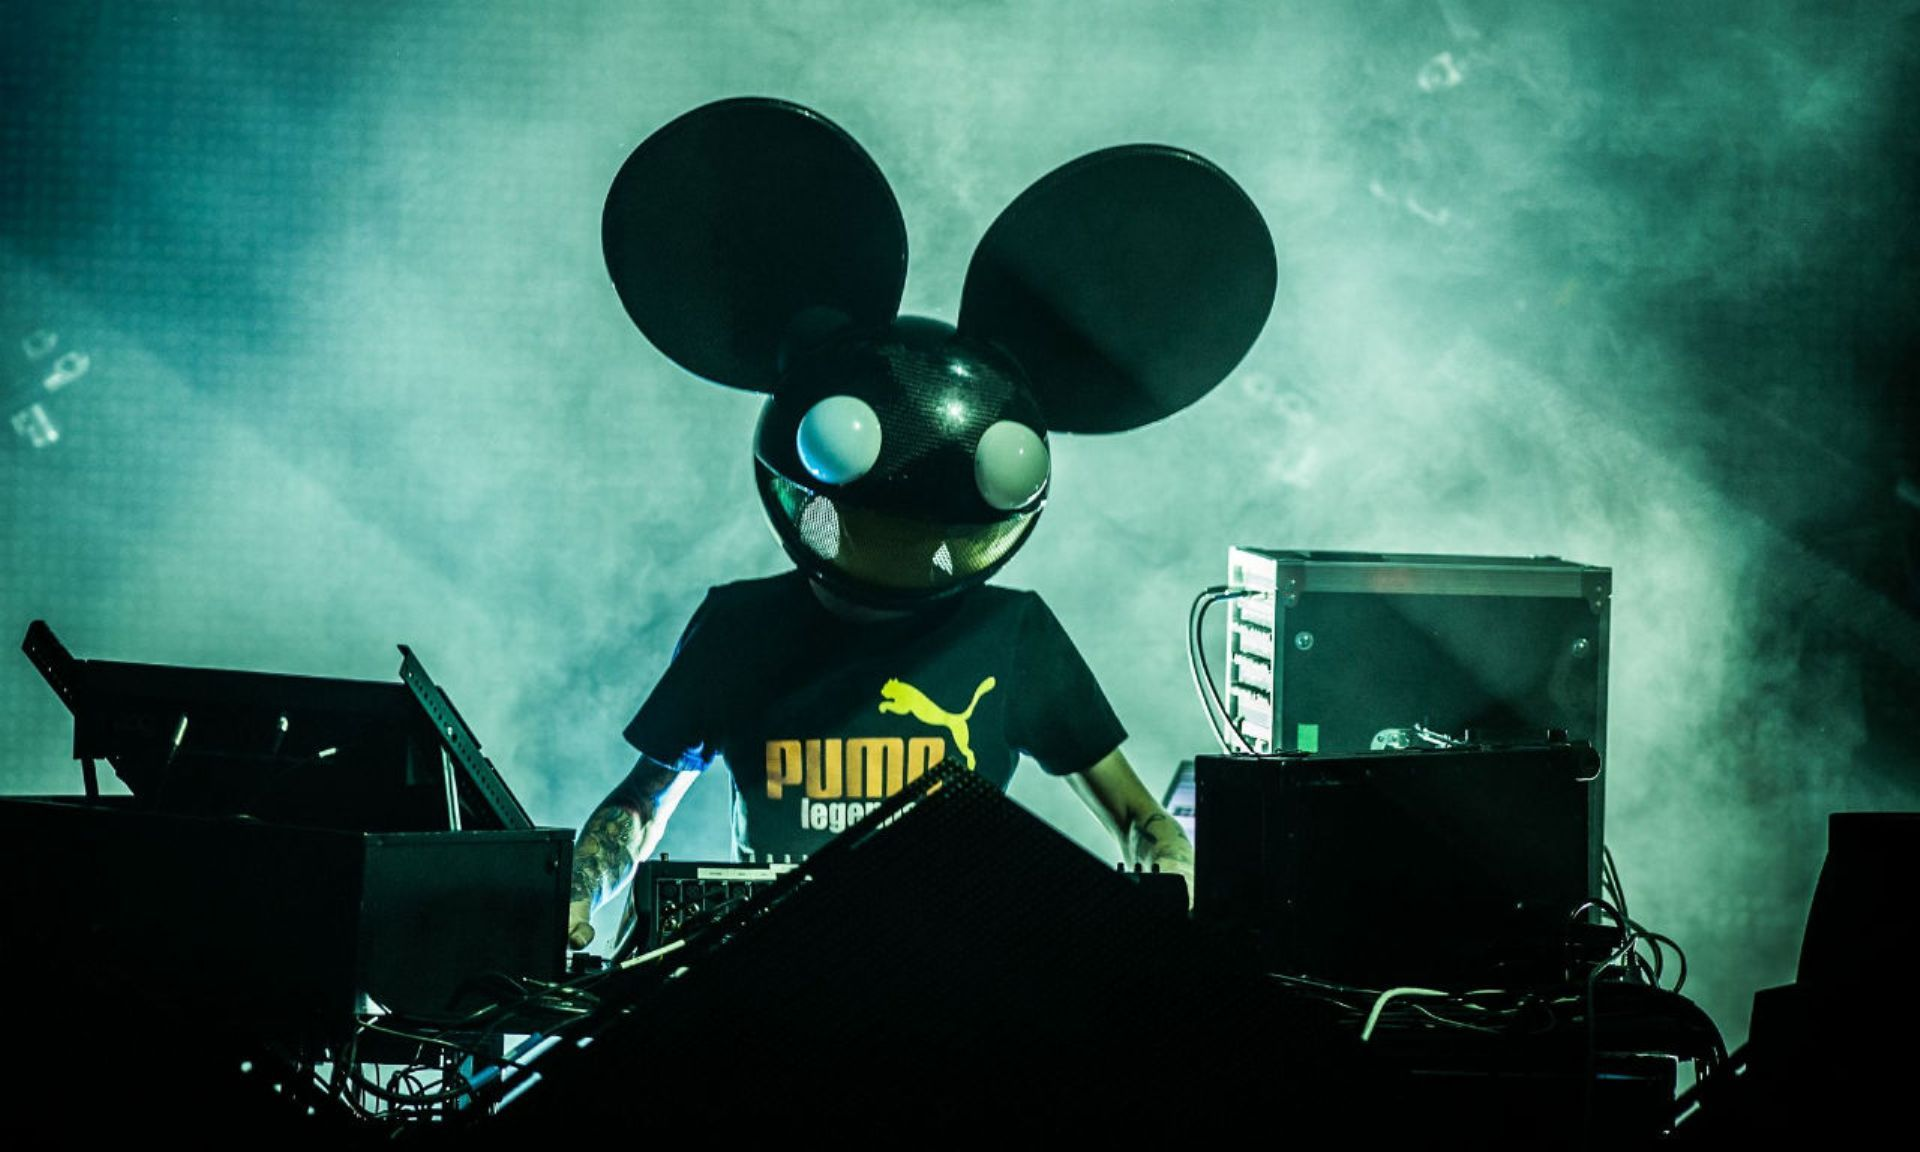 1920x1152 Deadmau5 wallpapers and Pictures — download for free